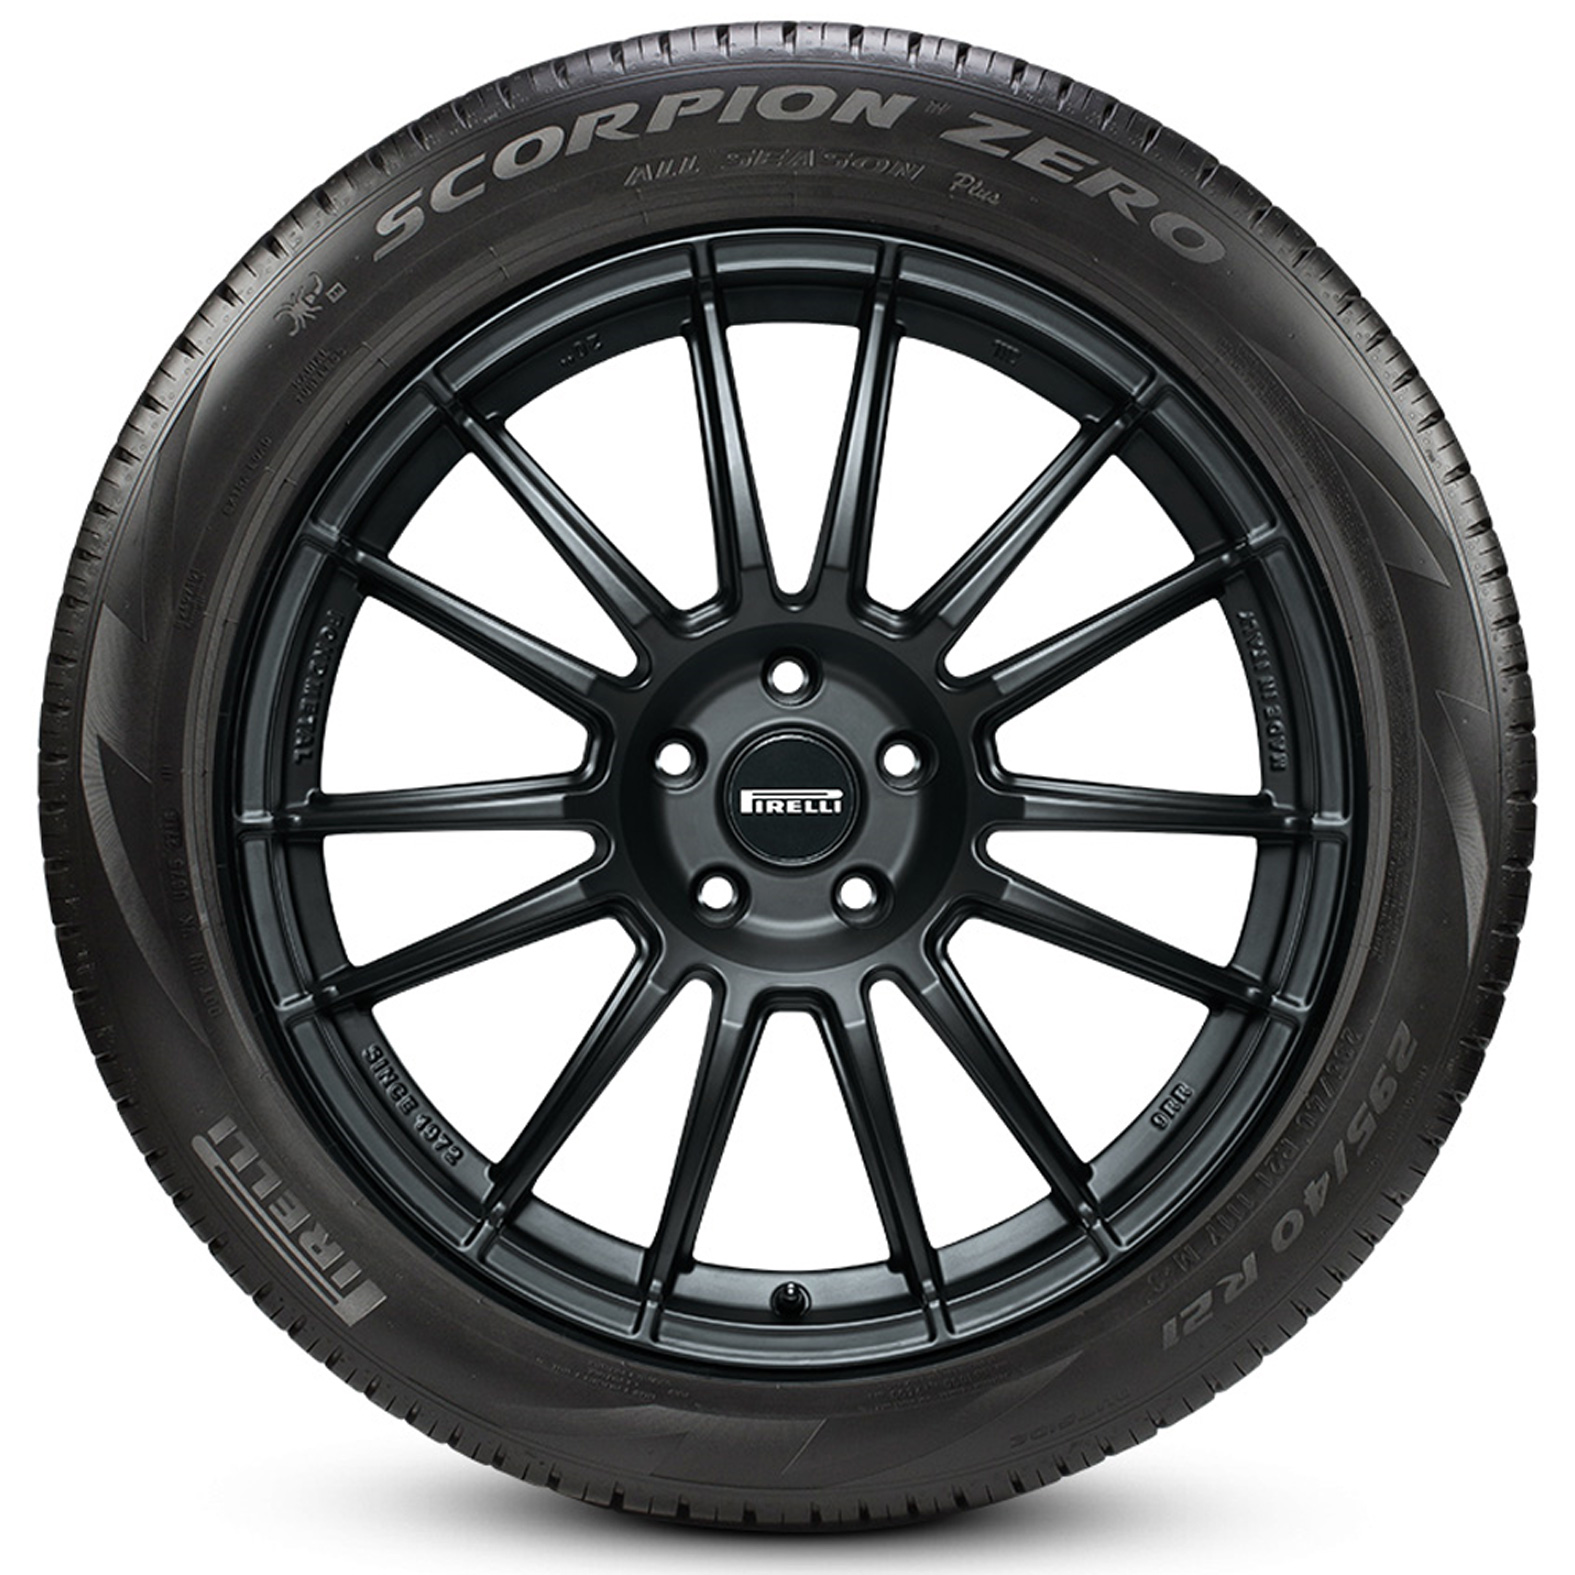 Pirelli Scorpion Zero All-Season tire - side